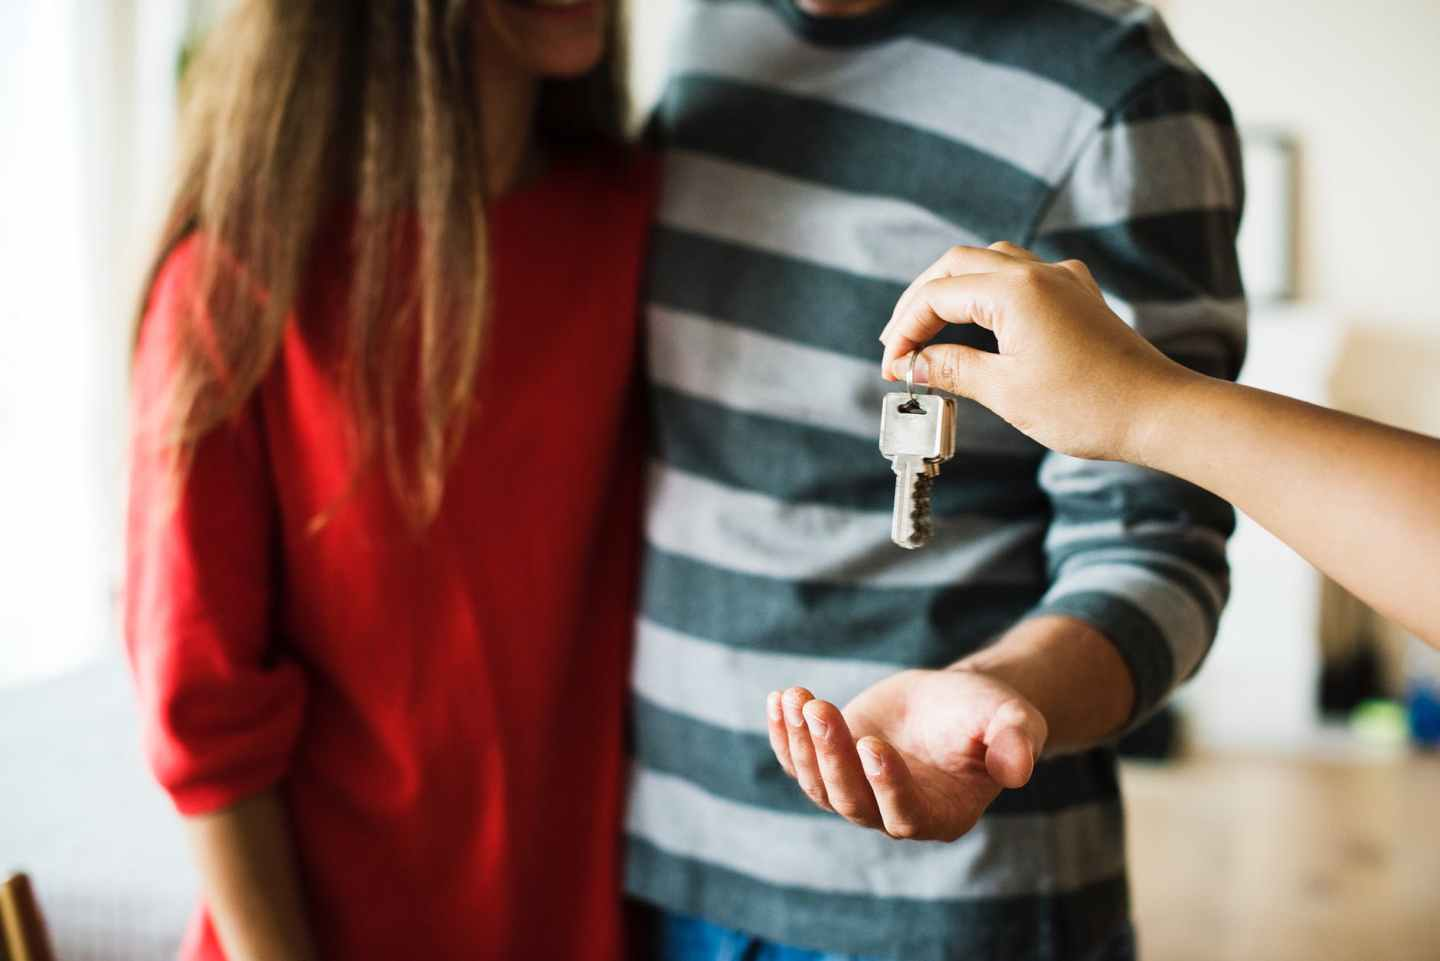 Getting together that first house deposit might seem like a mammoth task, but if you're to get on the property ladder, it's something you'll have to do. This epic journey has to start sometime and somewhere, so here's how you make the right moves.